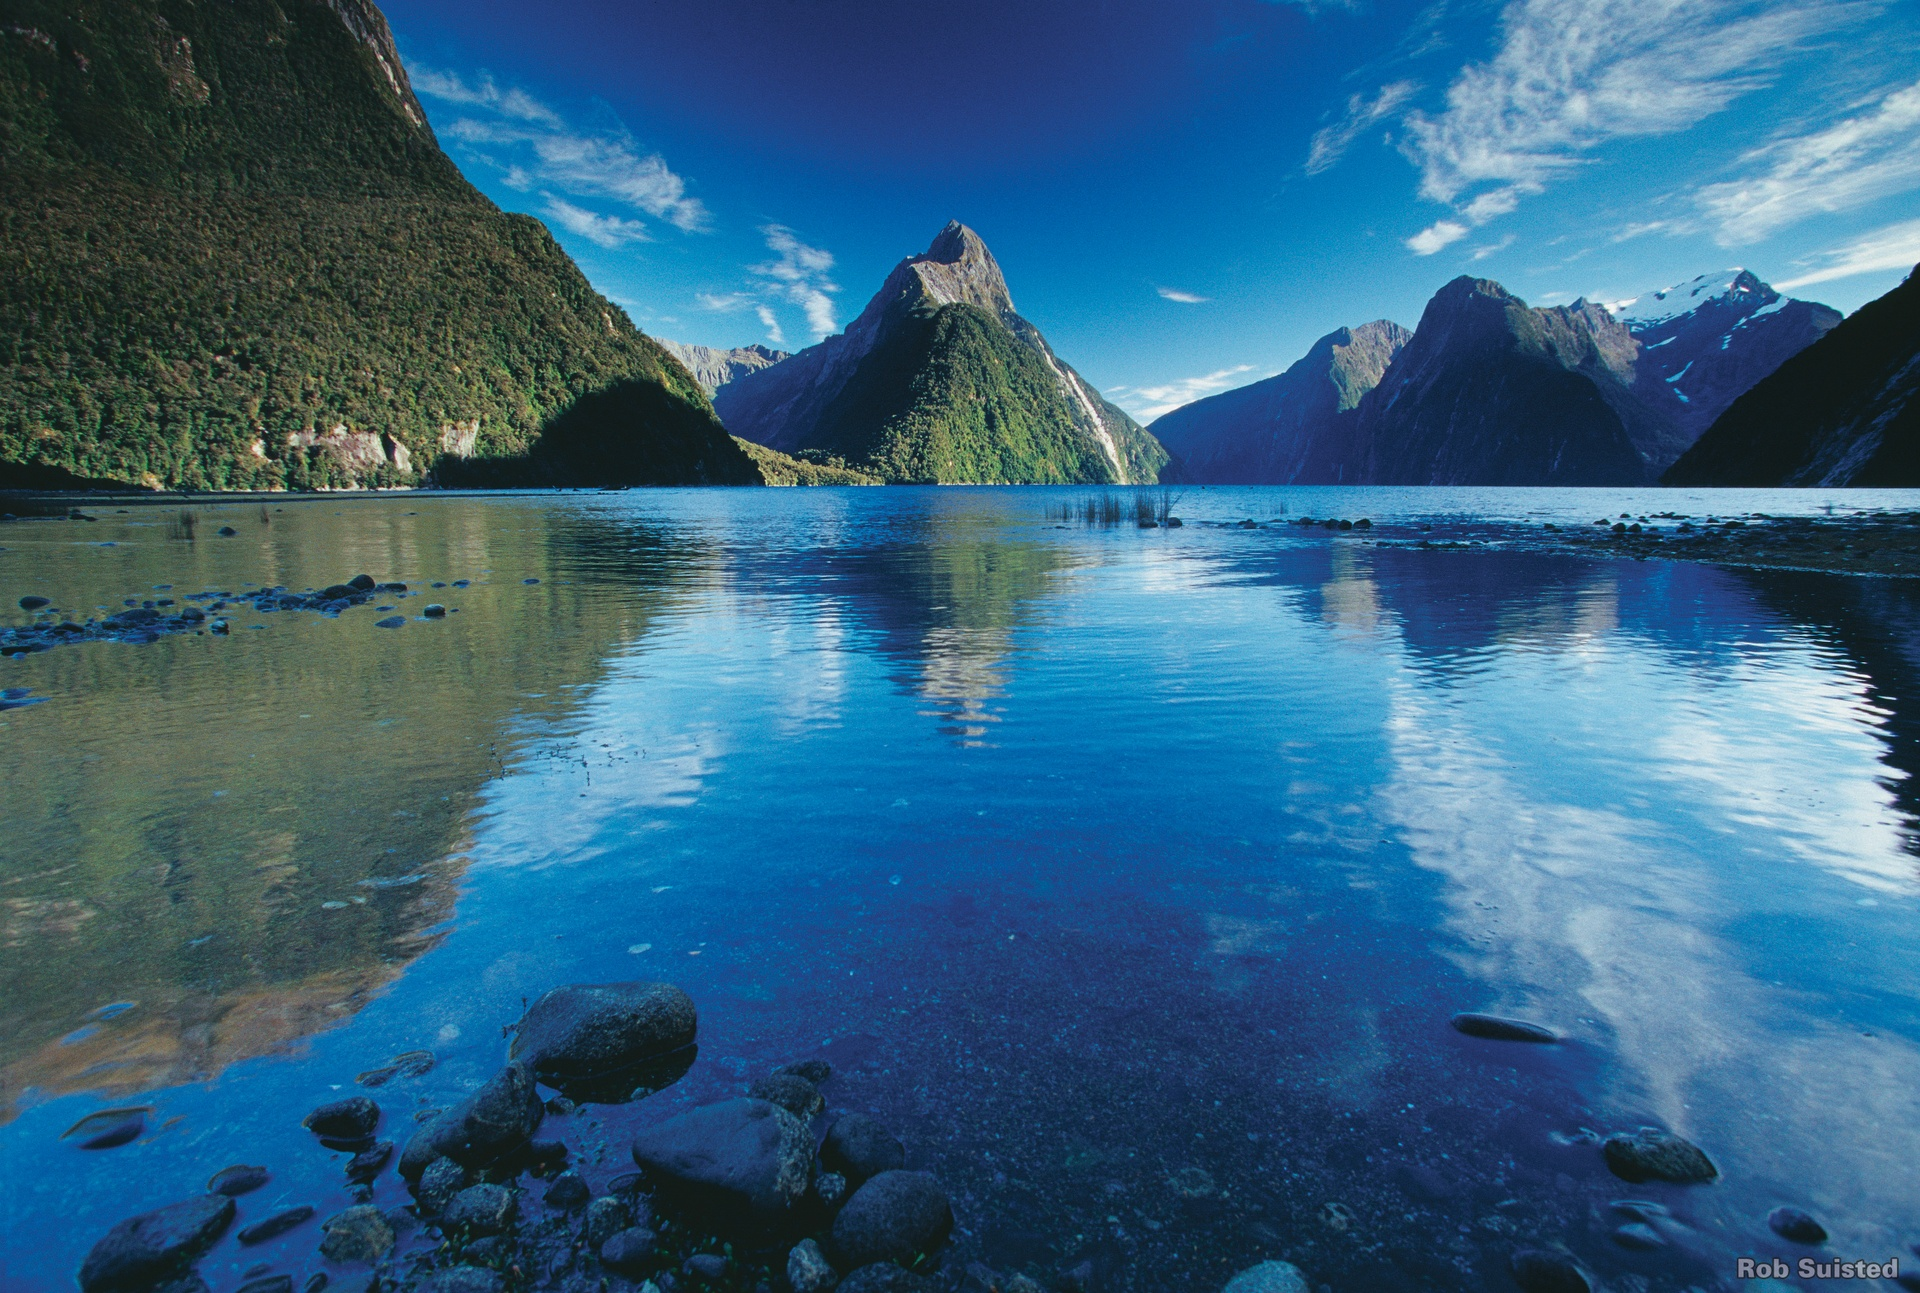 The Famous Milford Sound